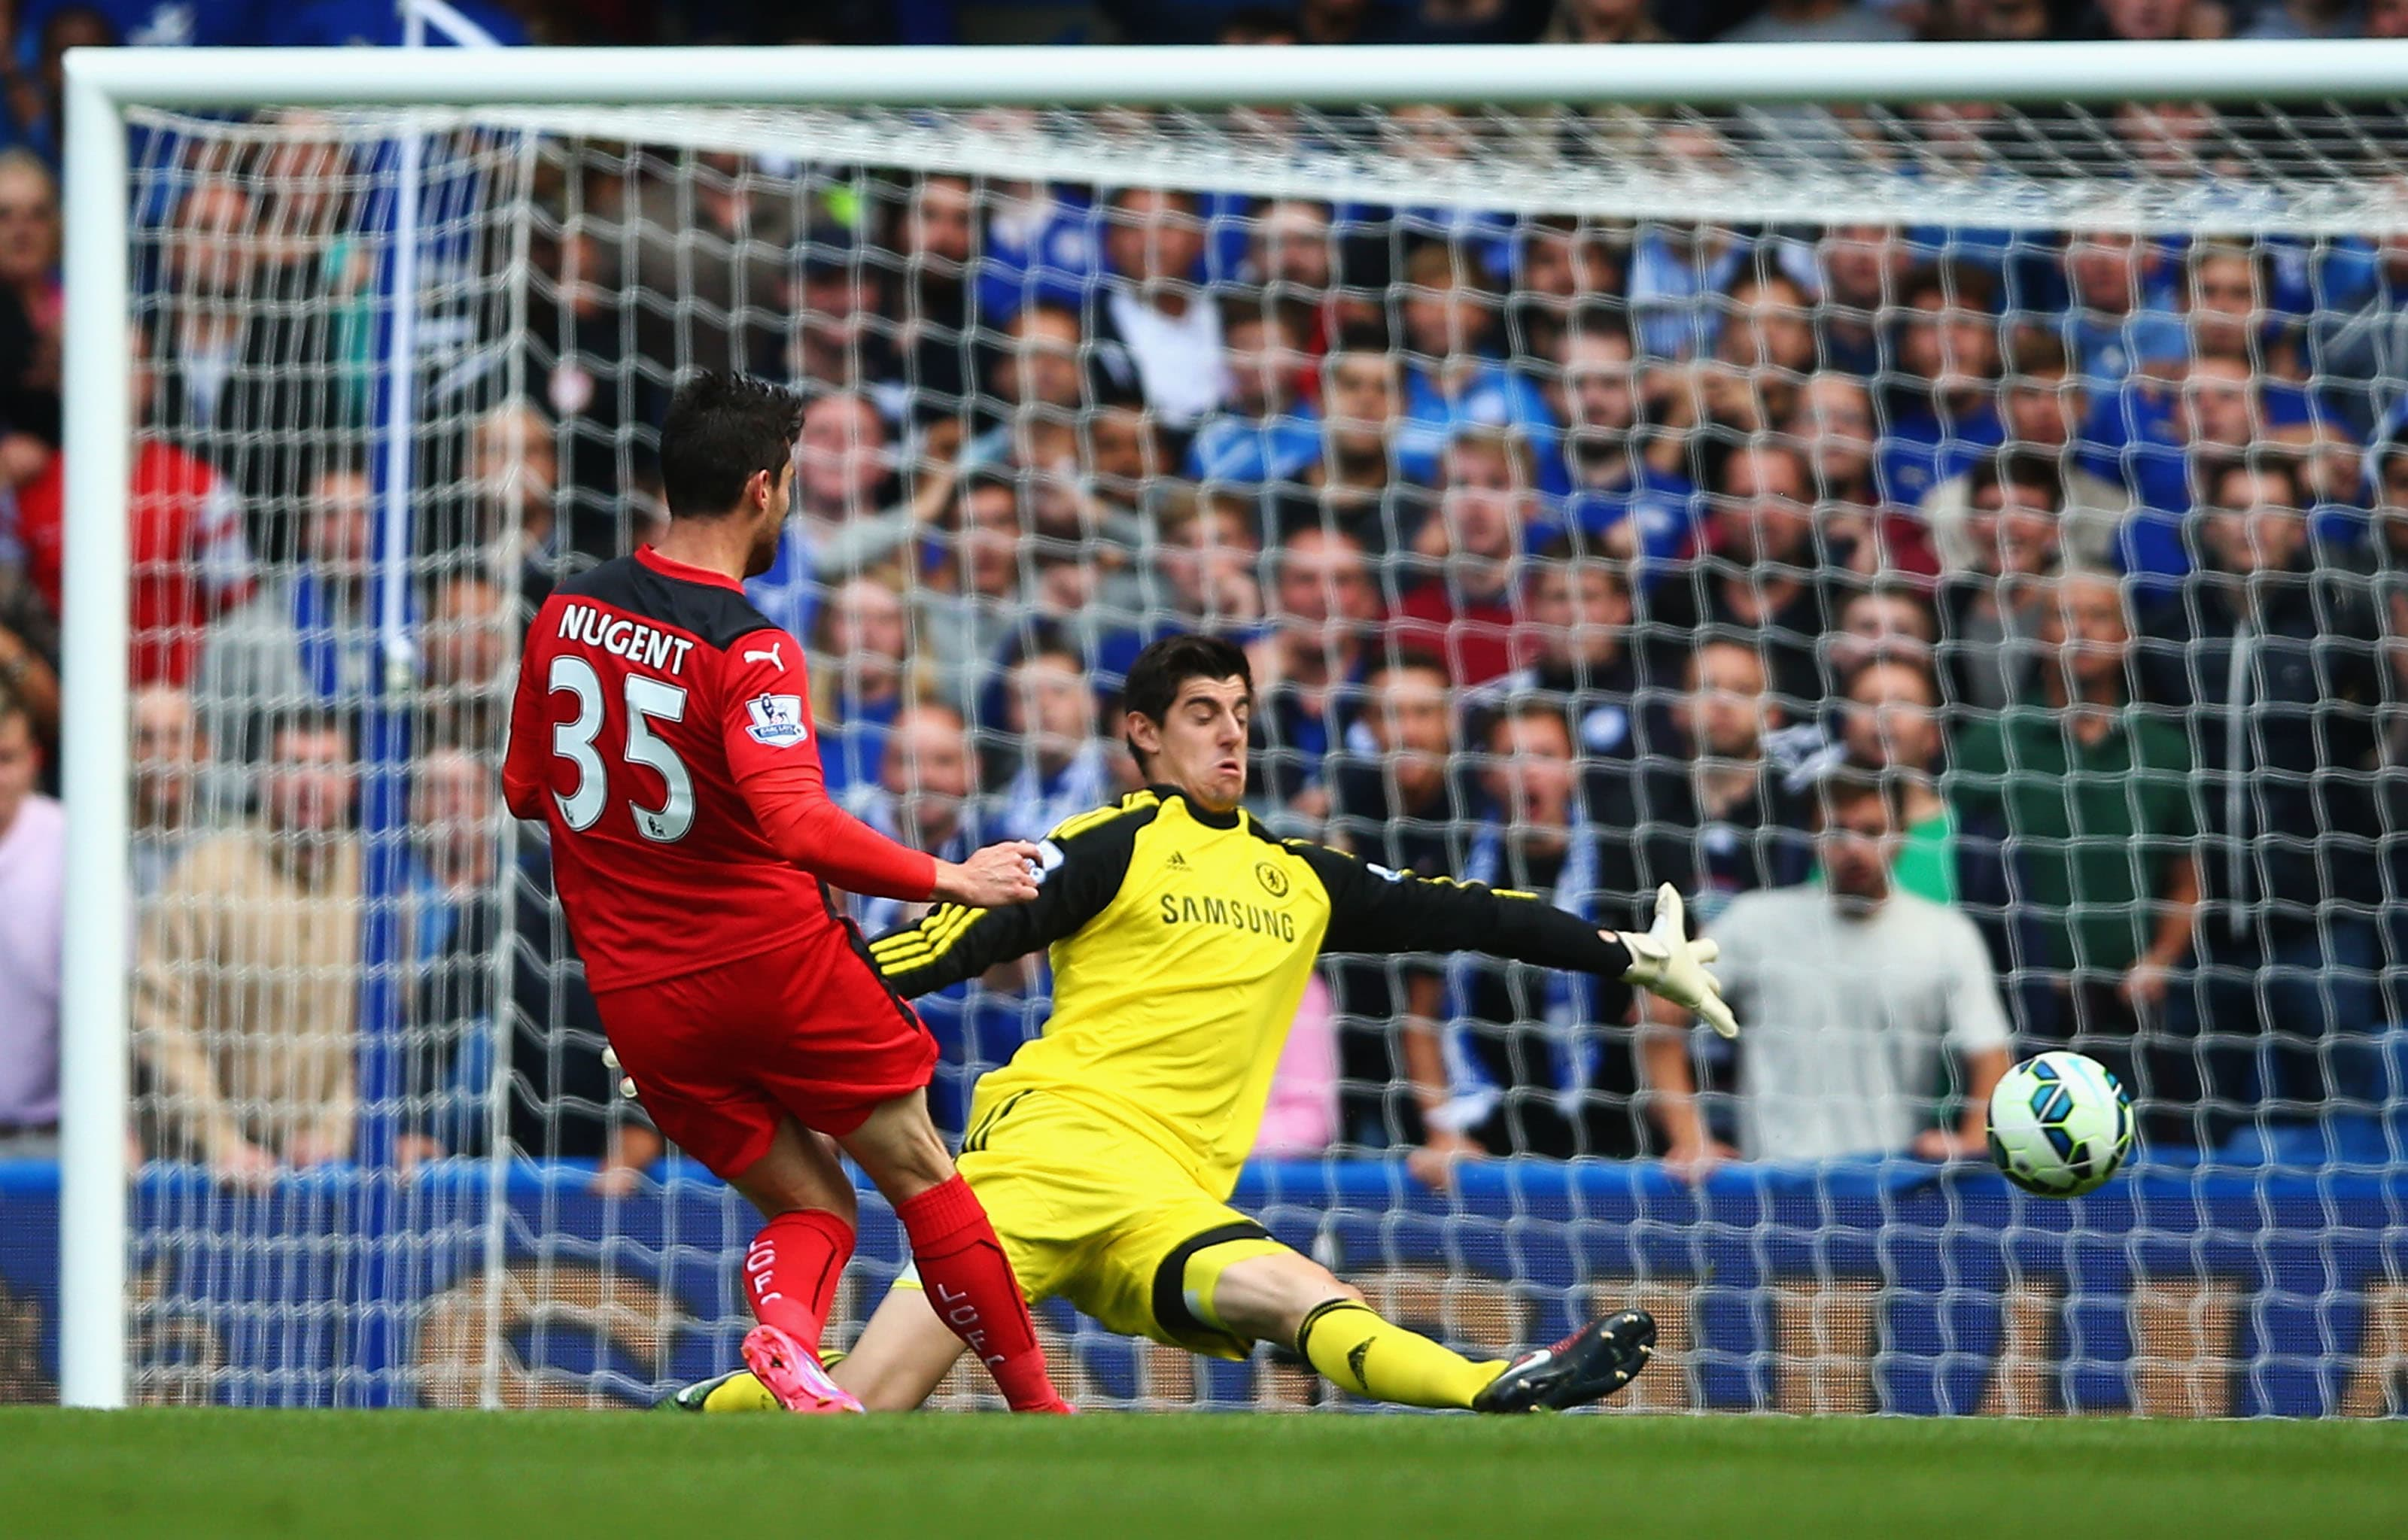 Courtois saves from Nugent to preserve his first Chelsea clean sheet